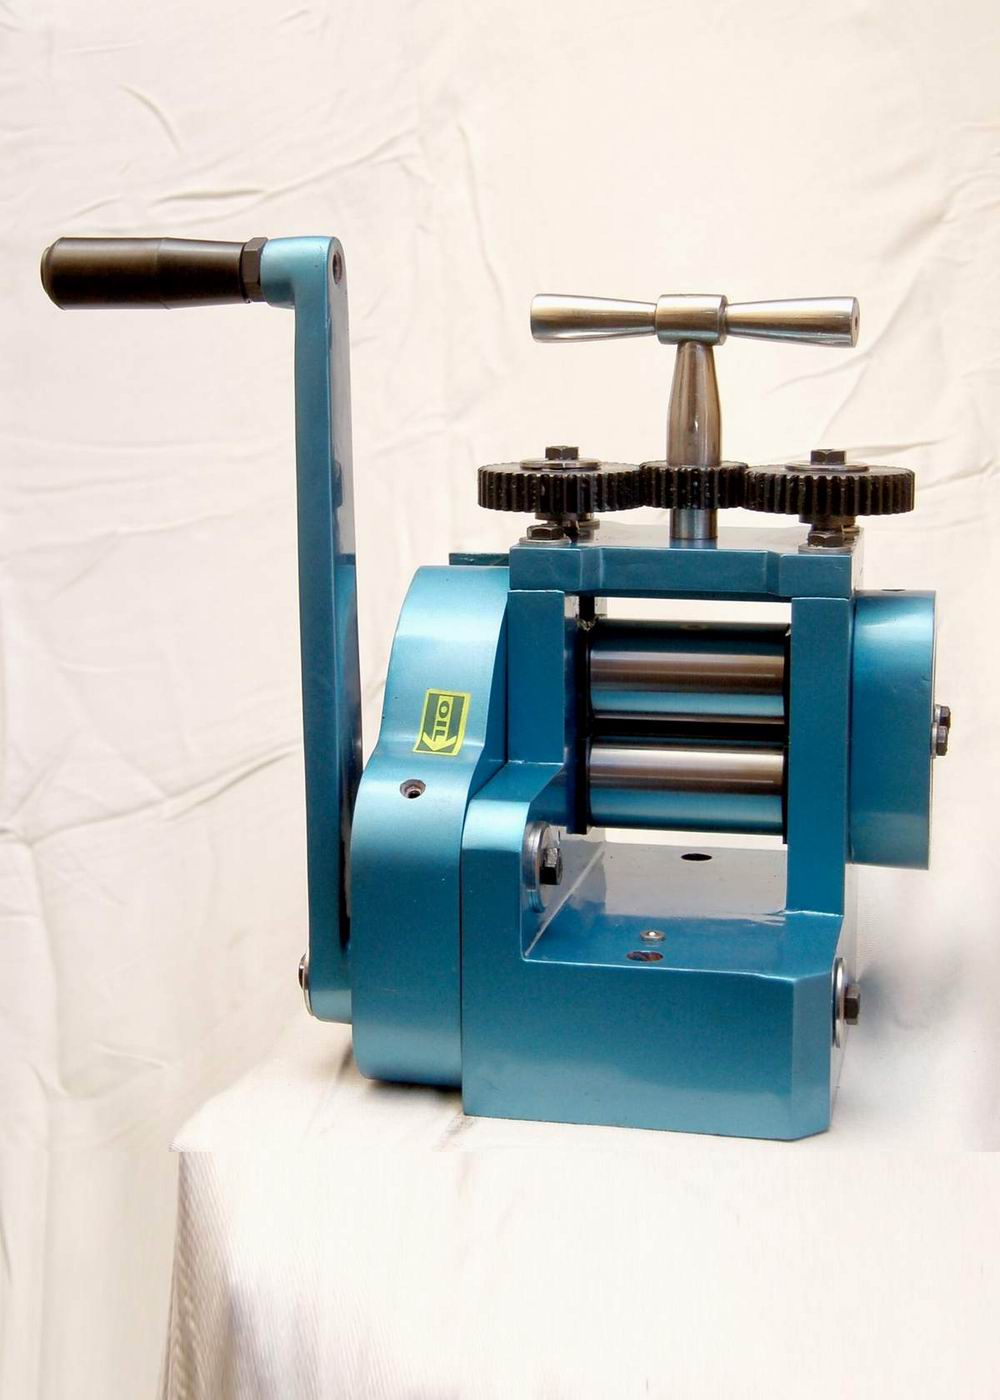 Goldsmith Machine Tools,Jewellery Tools,Watch Maker Tools - Buy ...